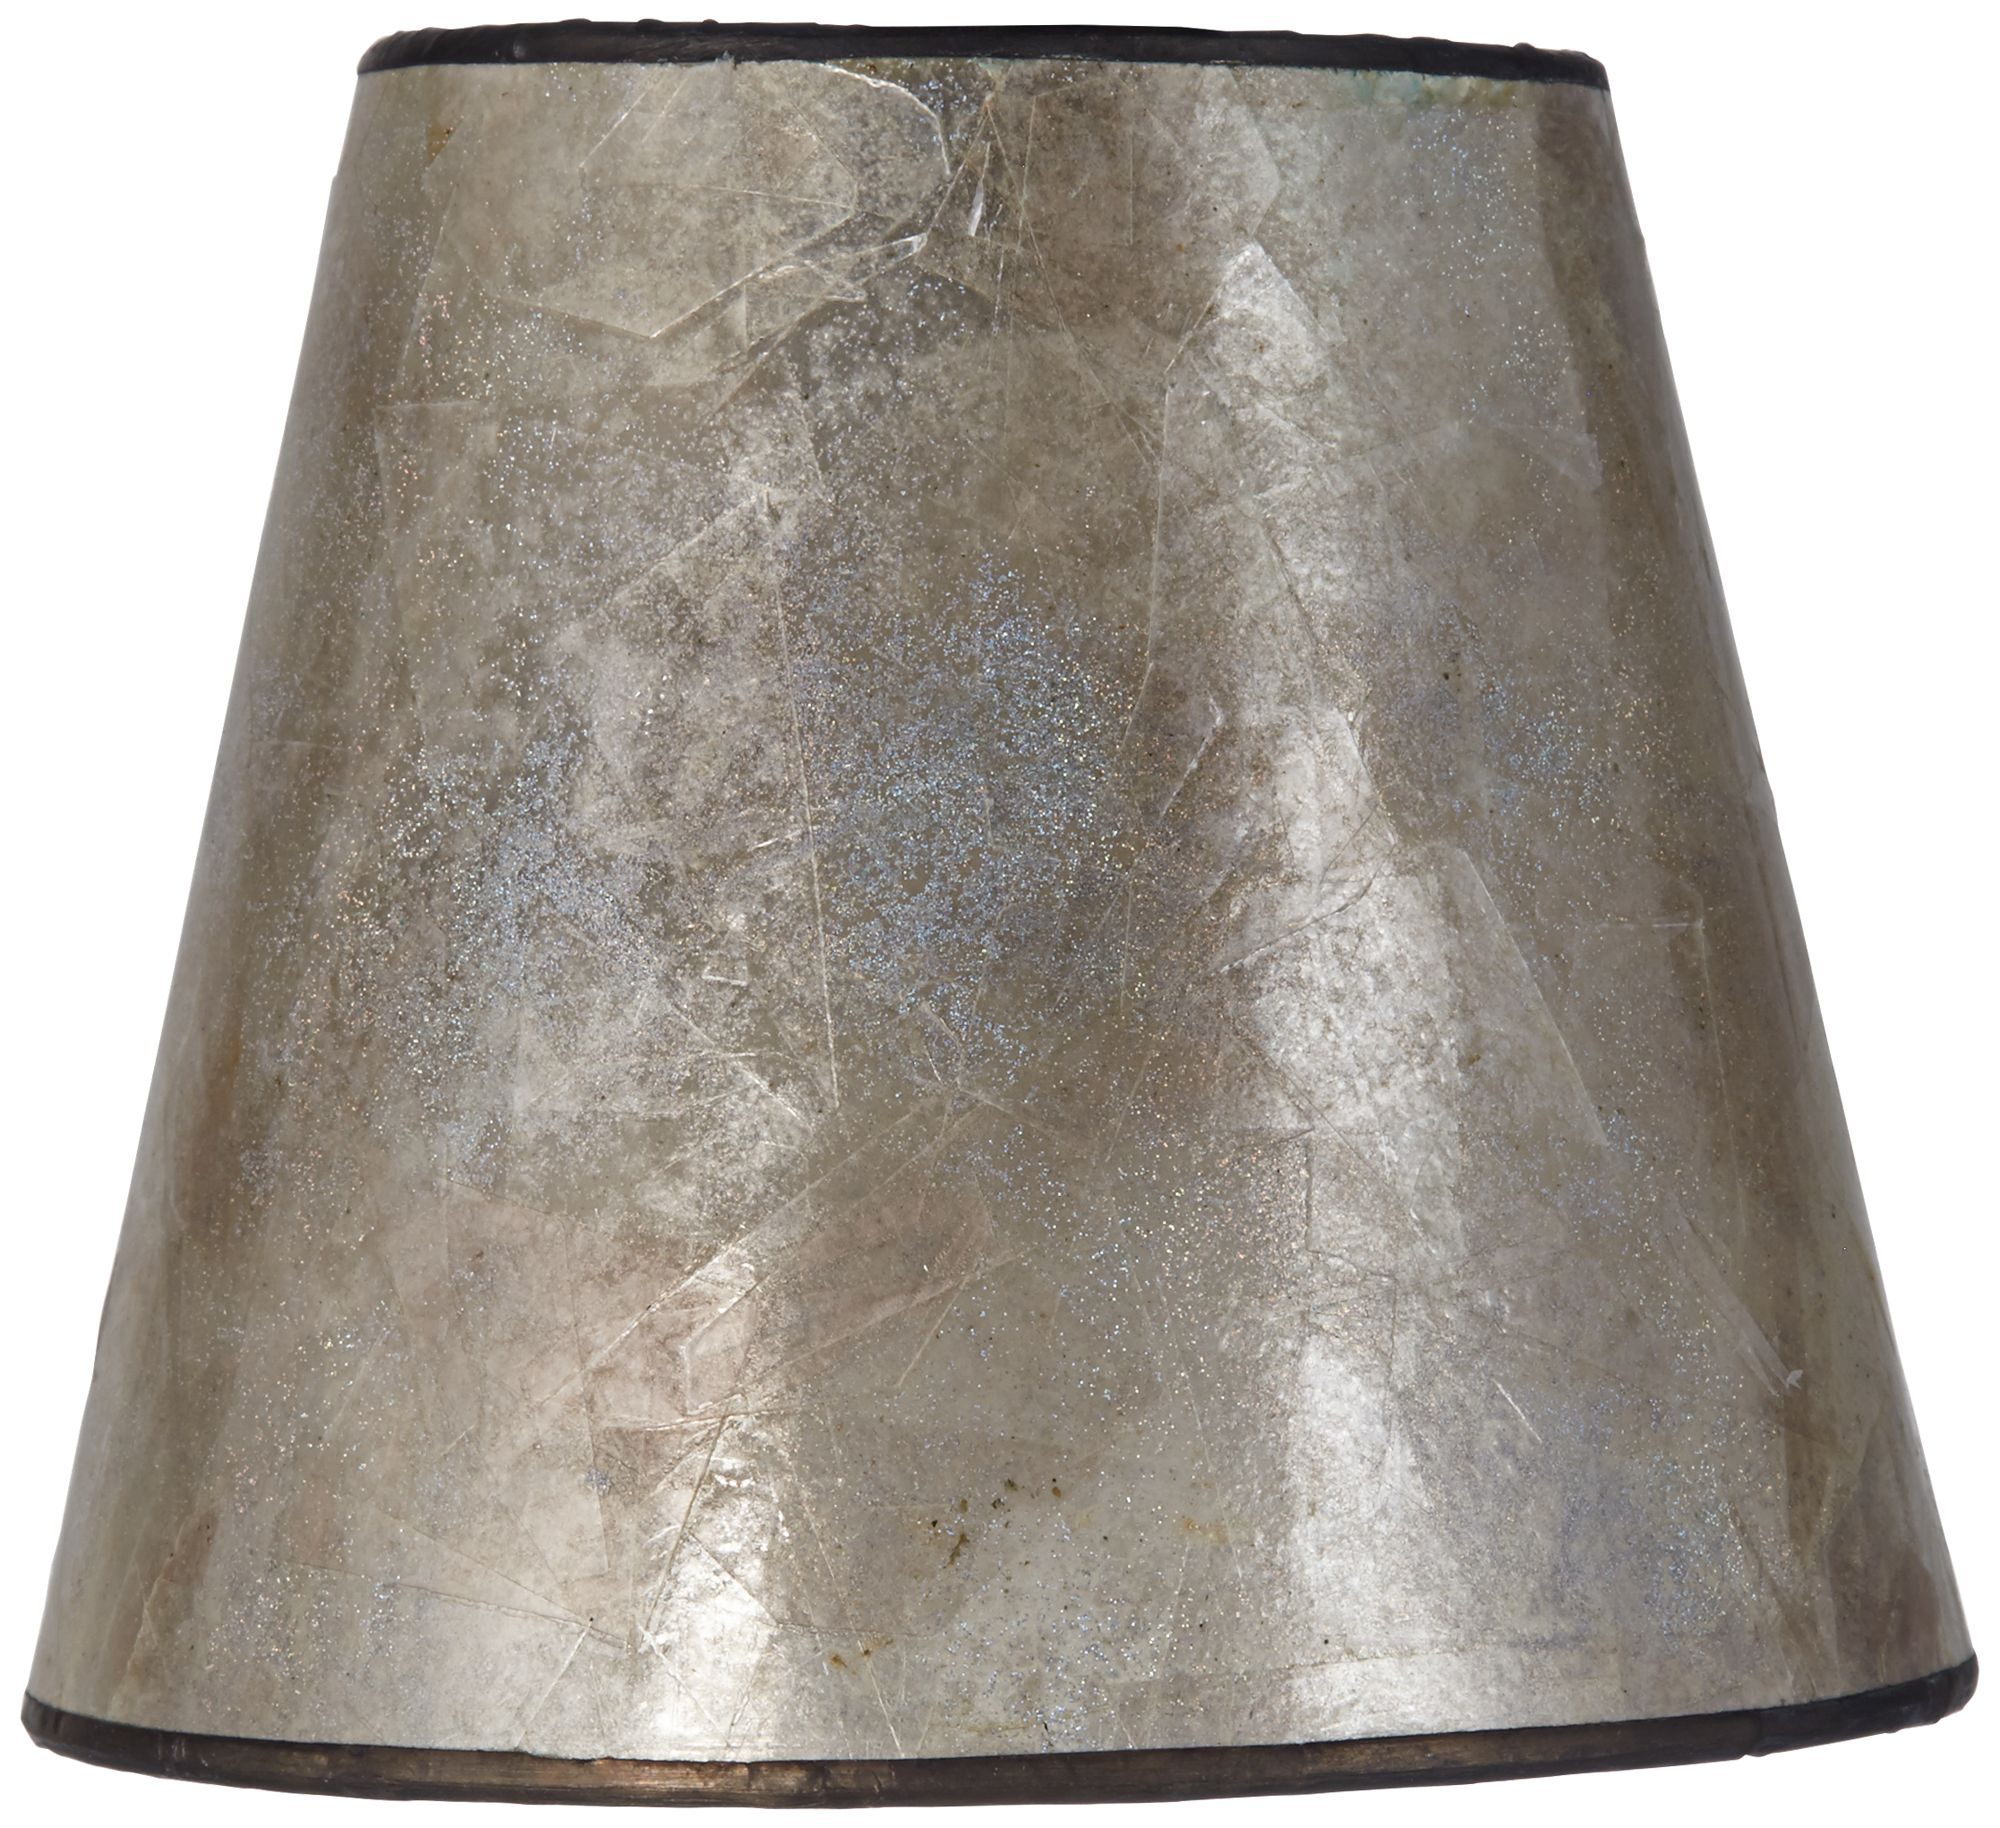 Blonde Mica Lamp Shade 3.5x5.5x5 (Clip-On)